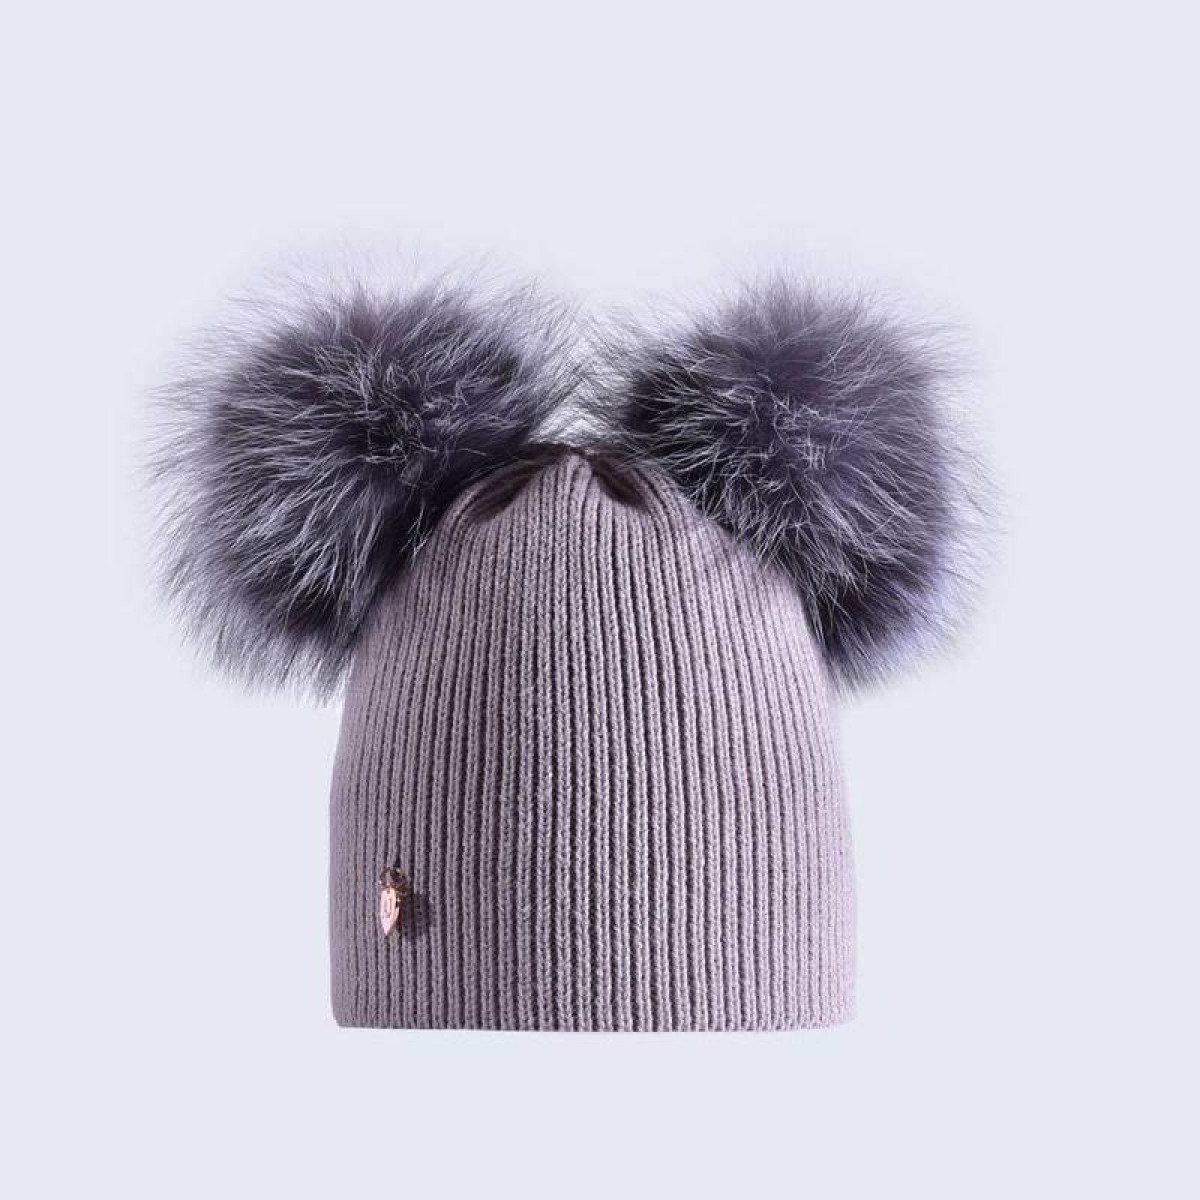 cedb4905b4b Amelia Jane London Light Grey Hat with Silver Fur Poms Adult Double Pom Pom